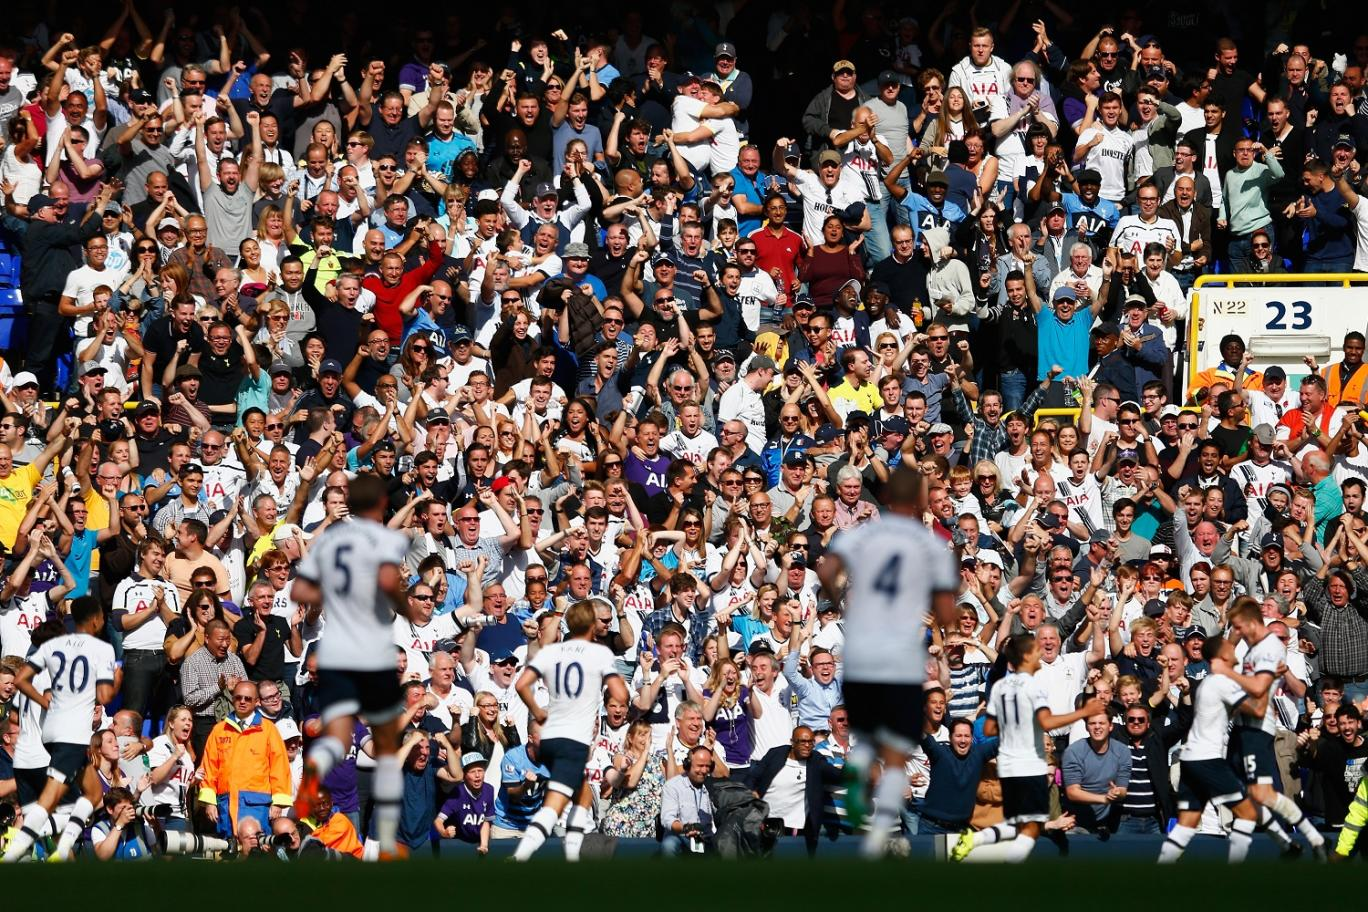 They don't care: Tottenham celebrate after Harry Kane scores his first league goal of the season Getty